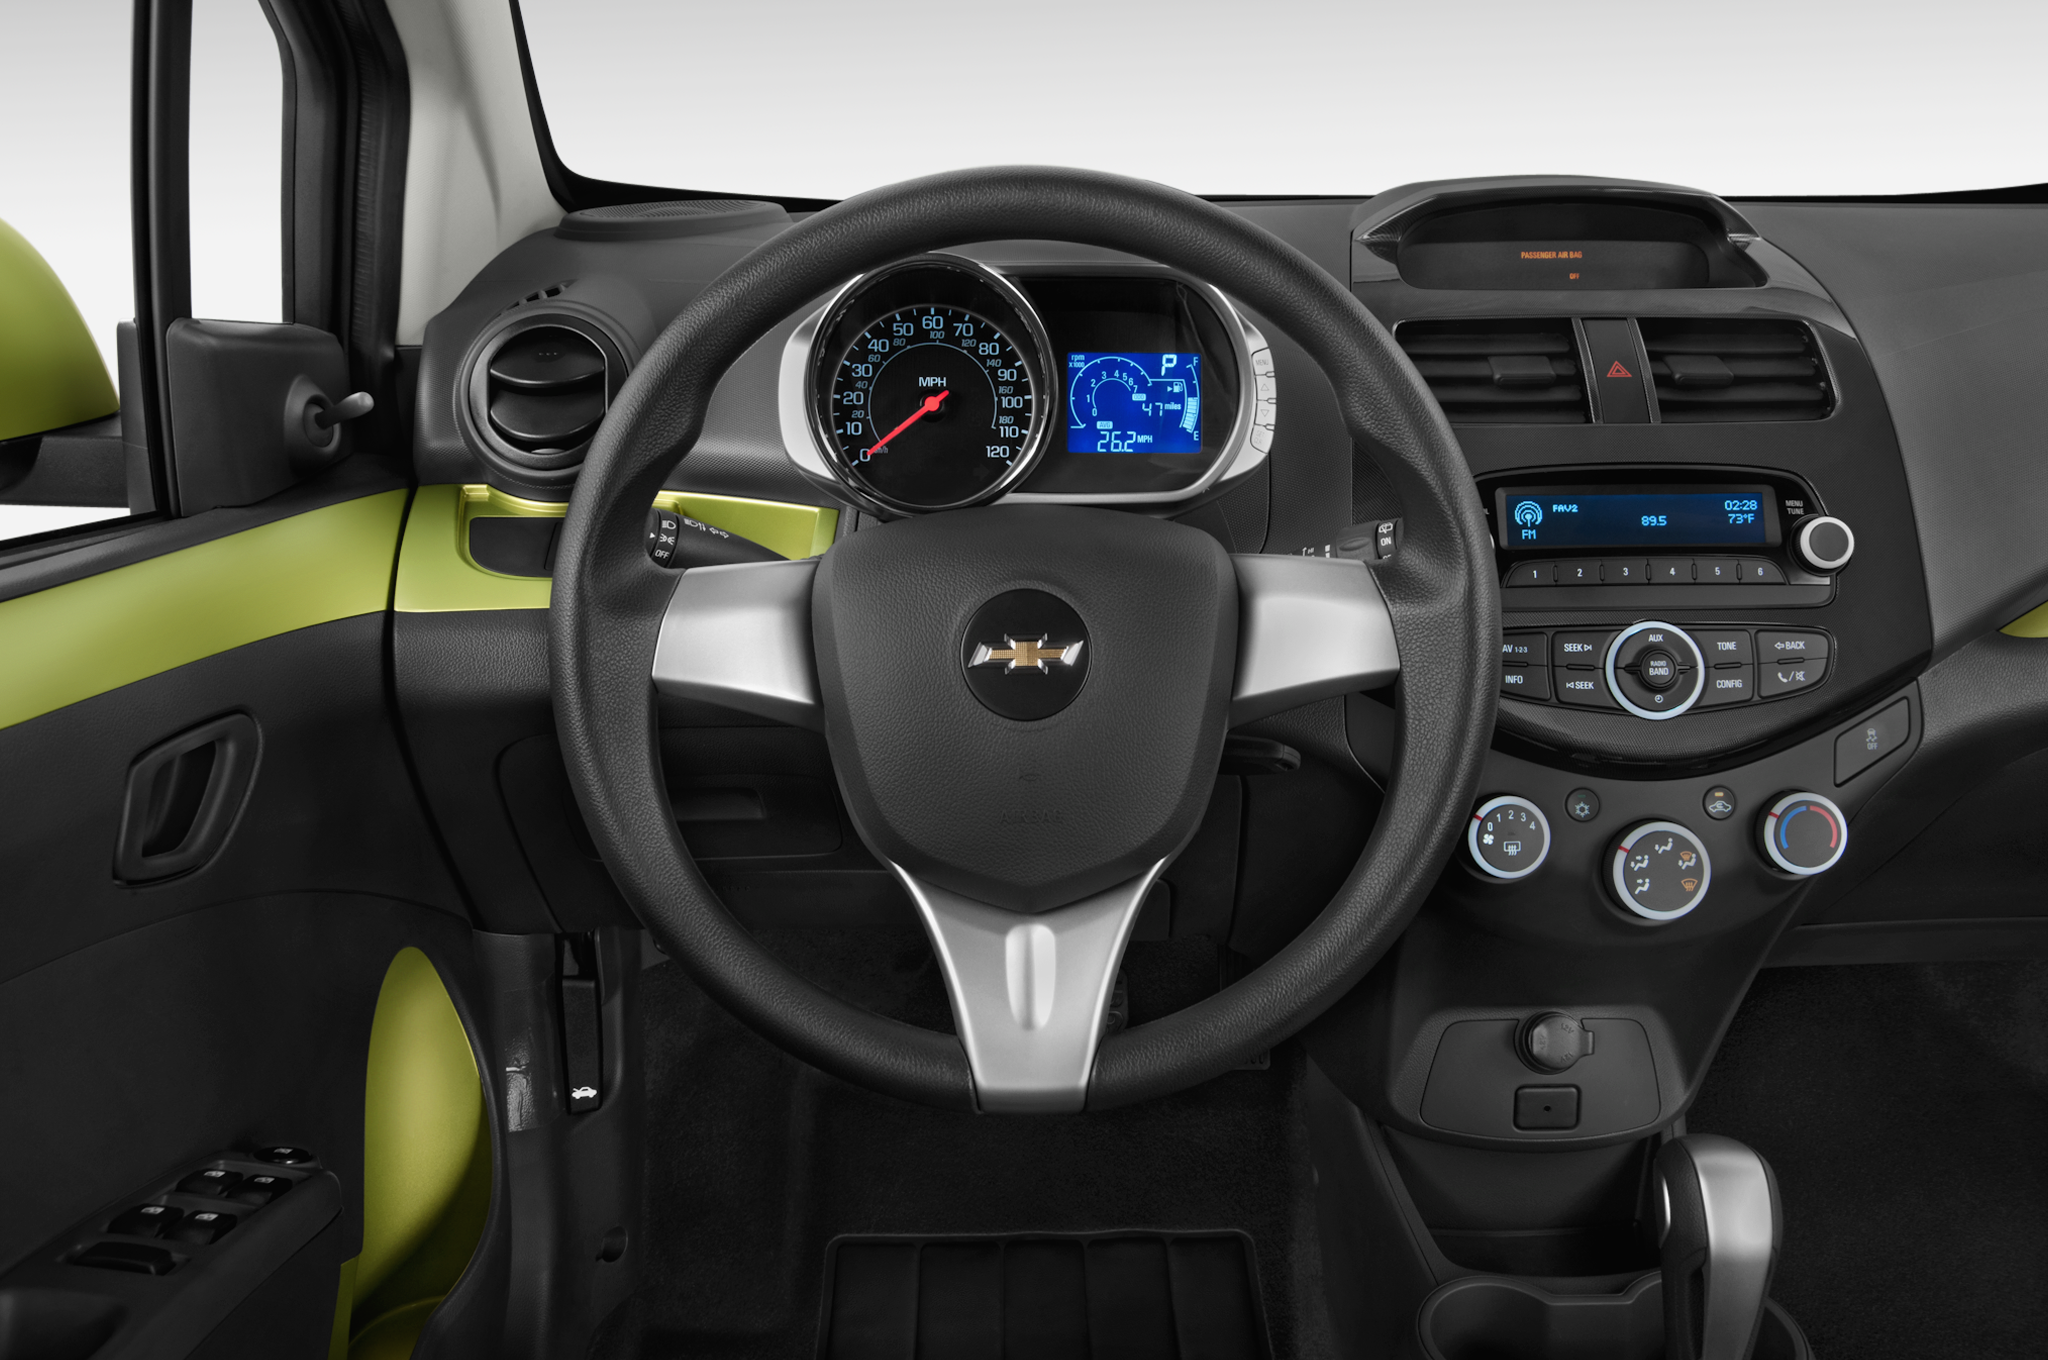 cars review truth img the capsule spark about chevrolet ev